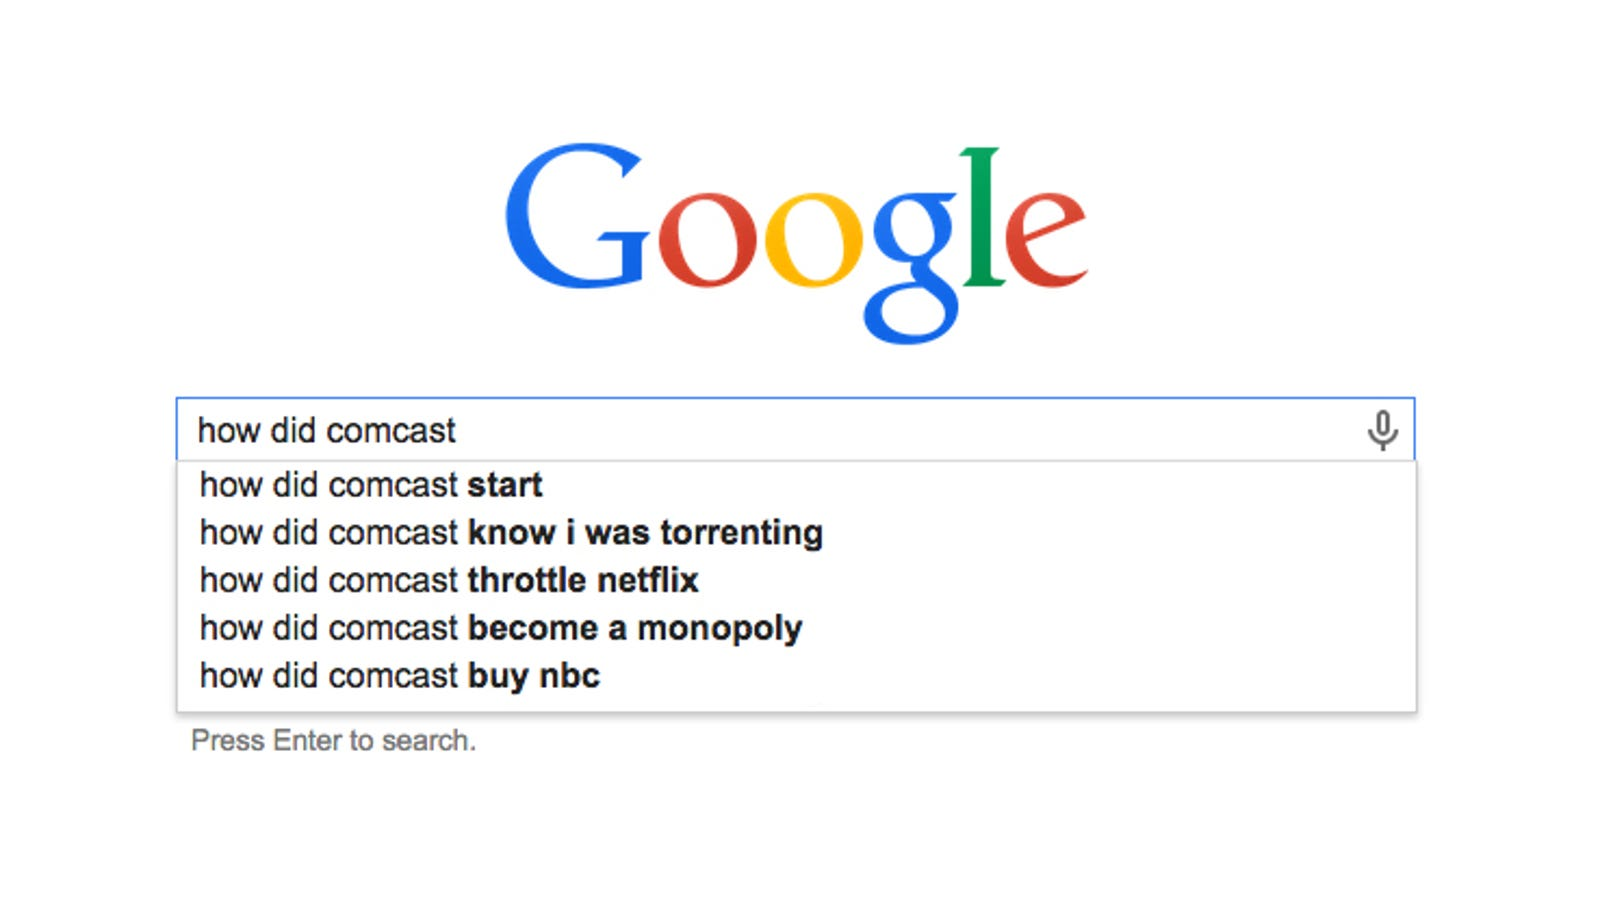 The history of comcast as told by google autofill solutioingenieria Images